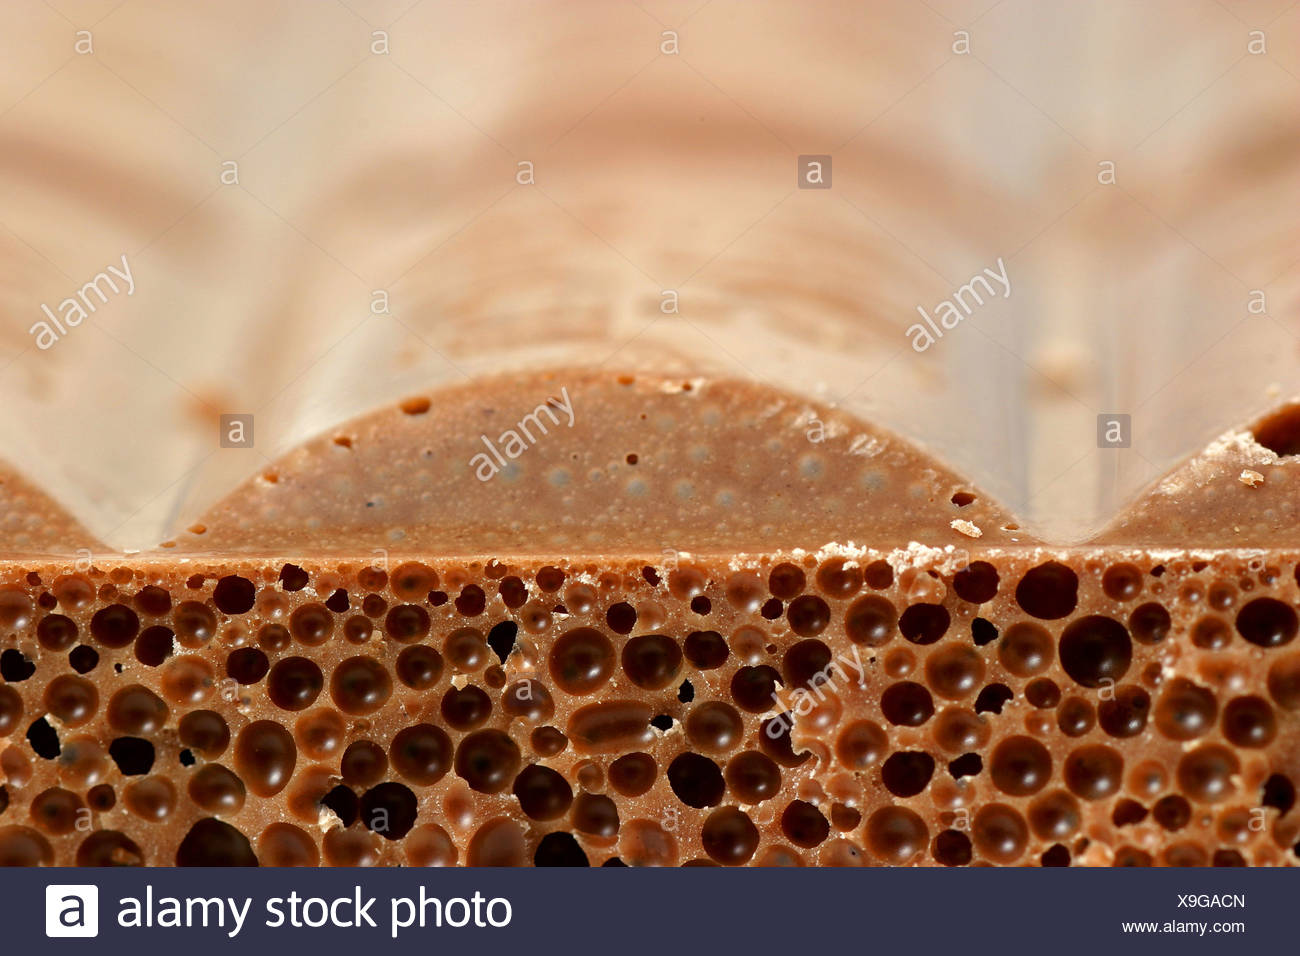 A close up of the side of a bar of milk chocolate with bubbles in it - Stock Image